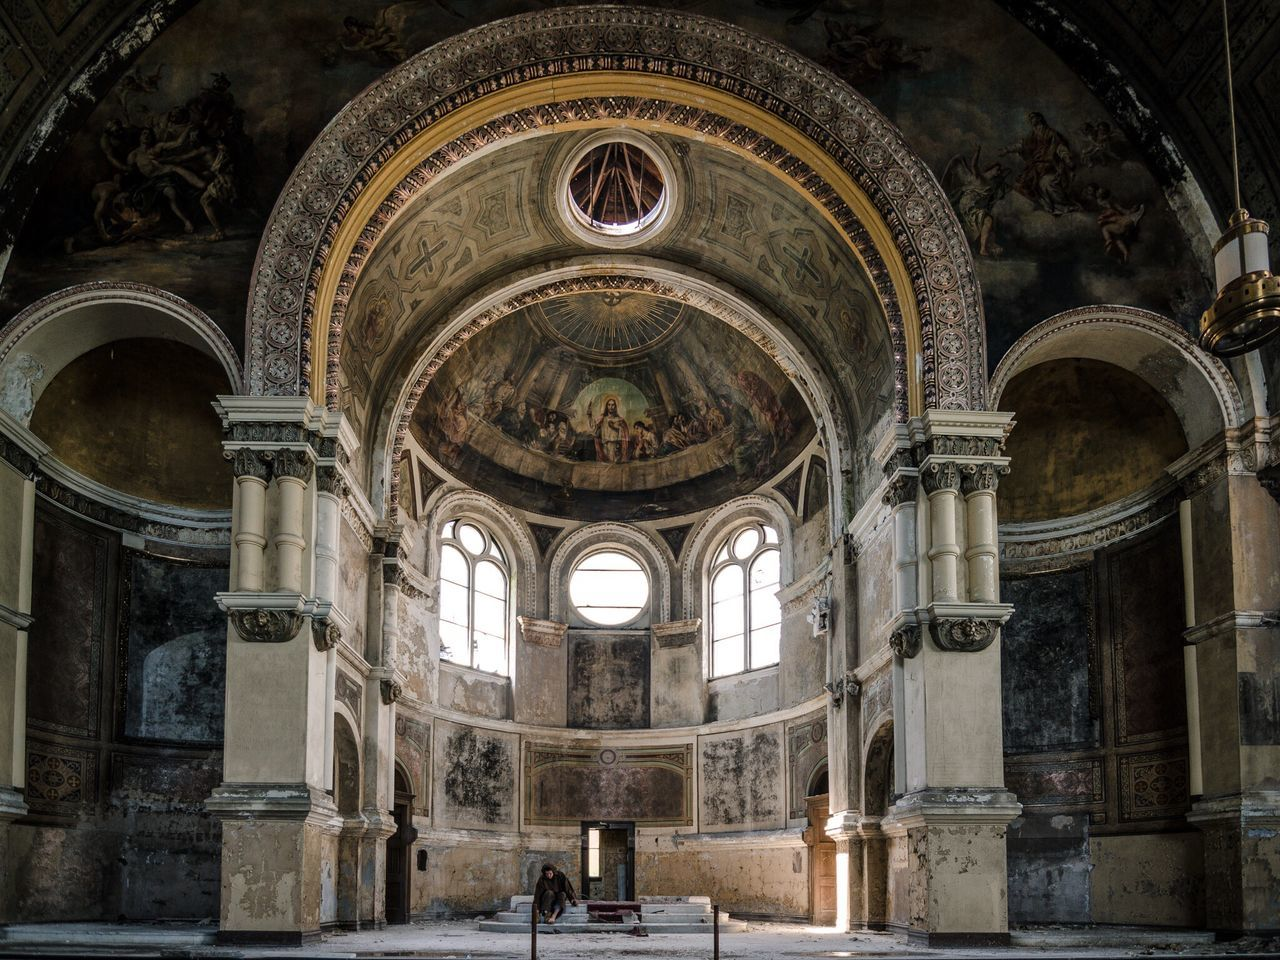 The Architect - 2017 EyeEm Awards Architecture Built Structure Arch Spirituality History Travel Destinations Place Of Worship Religion Indoors  Day Real People Architectural Column